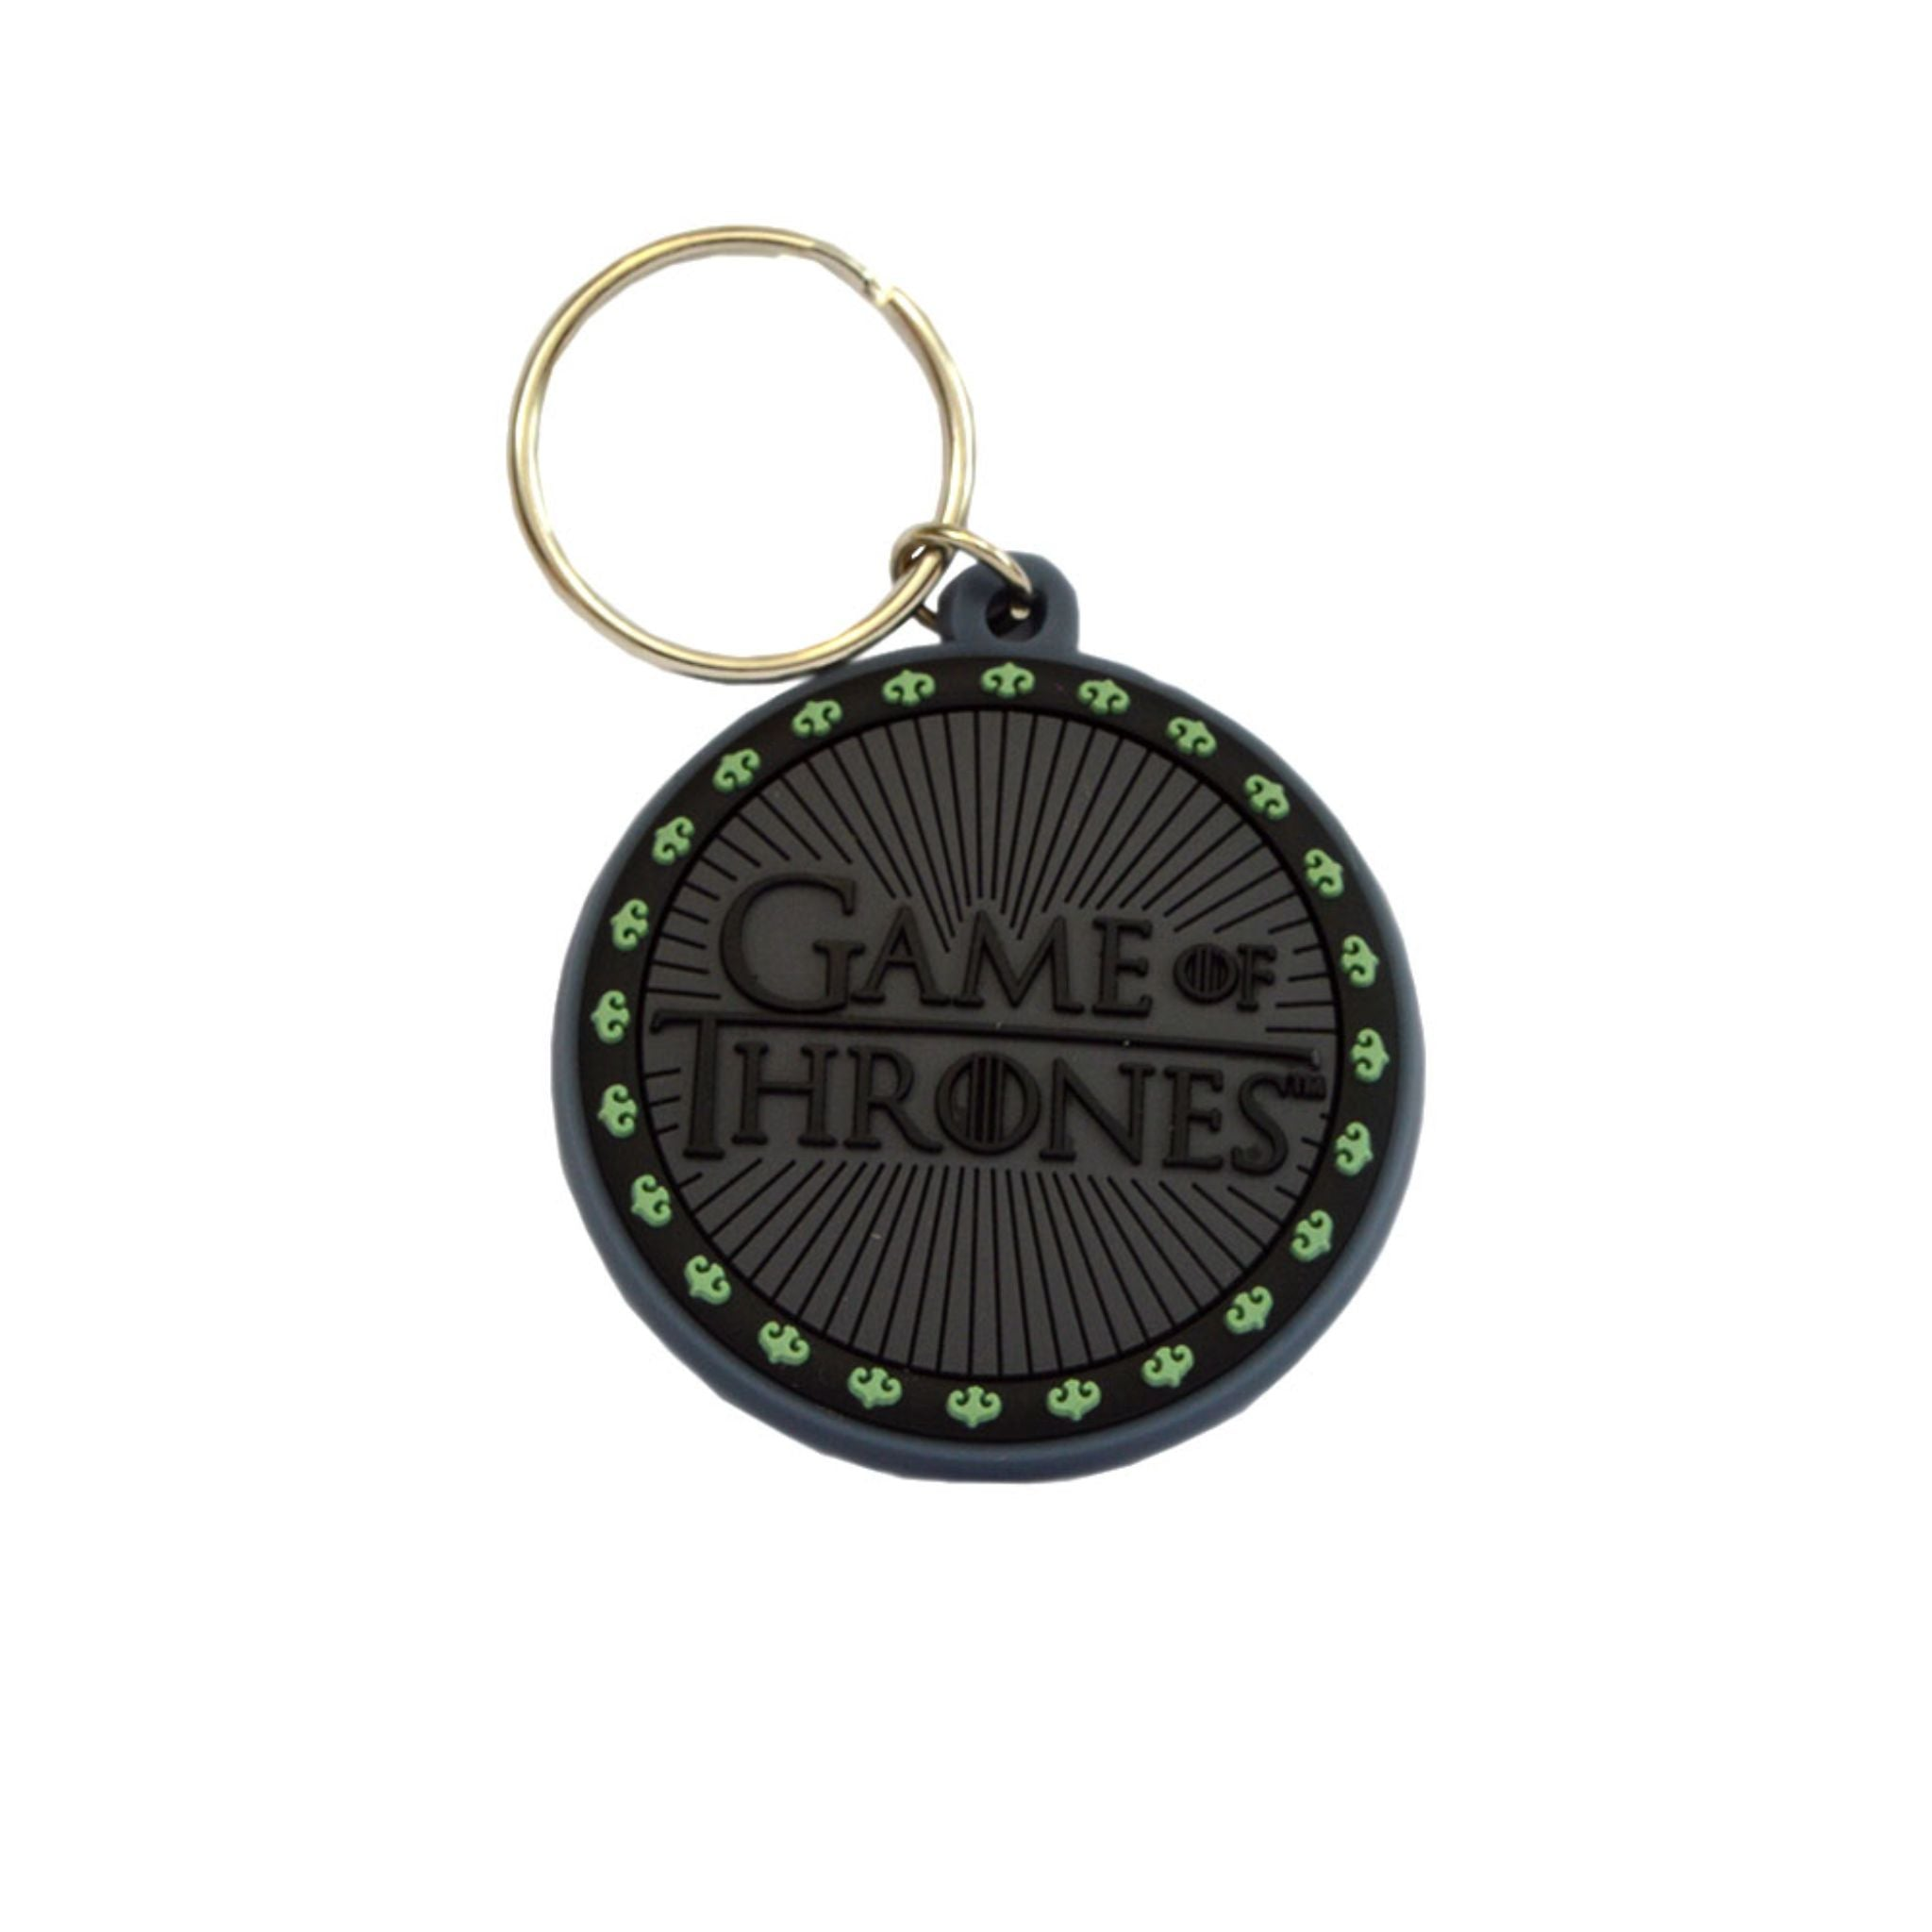 GAME OF THRONES (LOGO) RUBBER KEYCHAIN